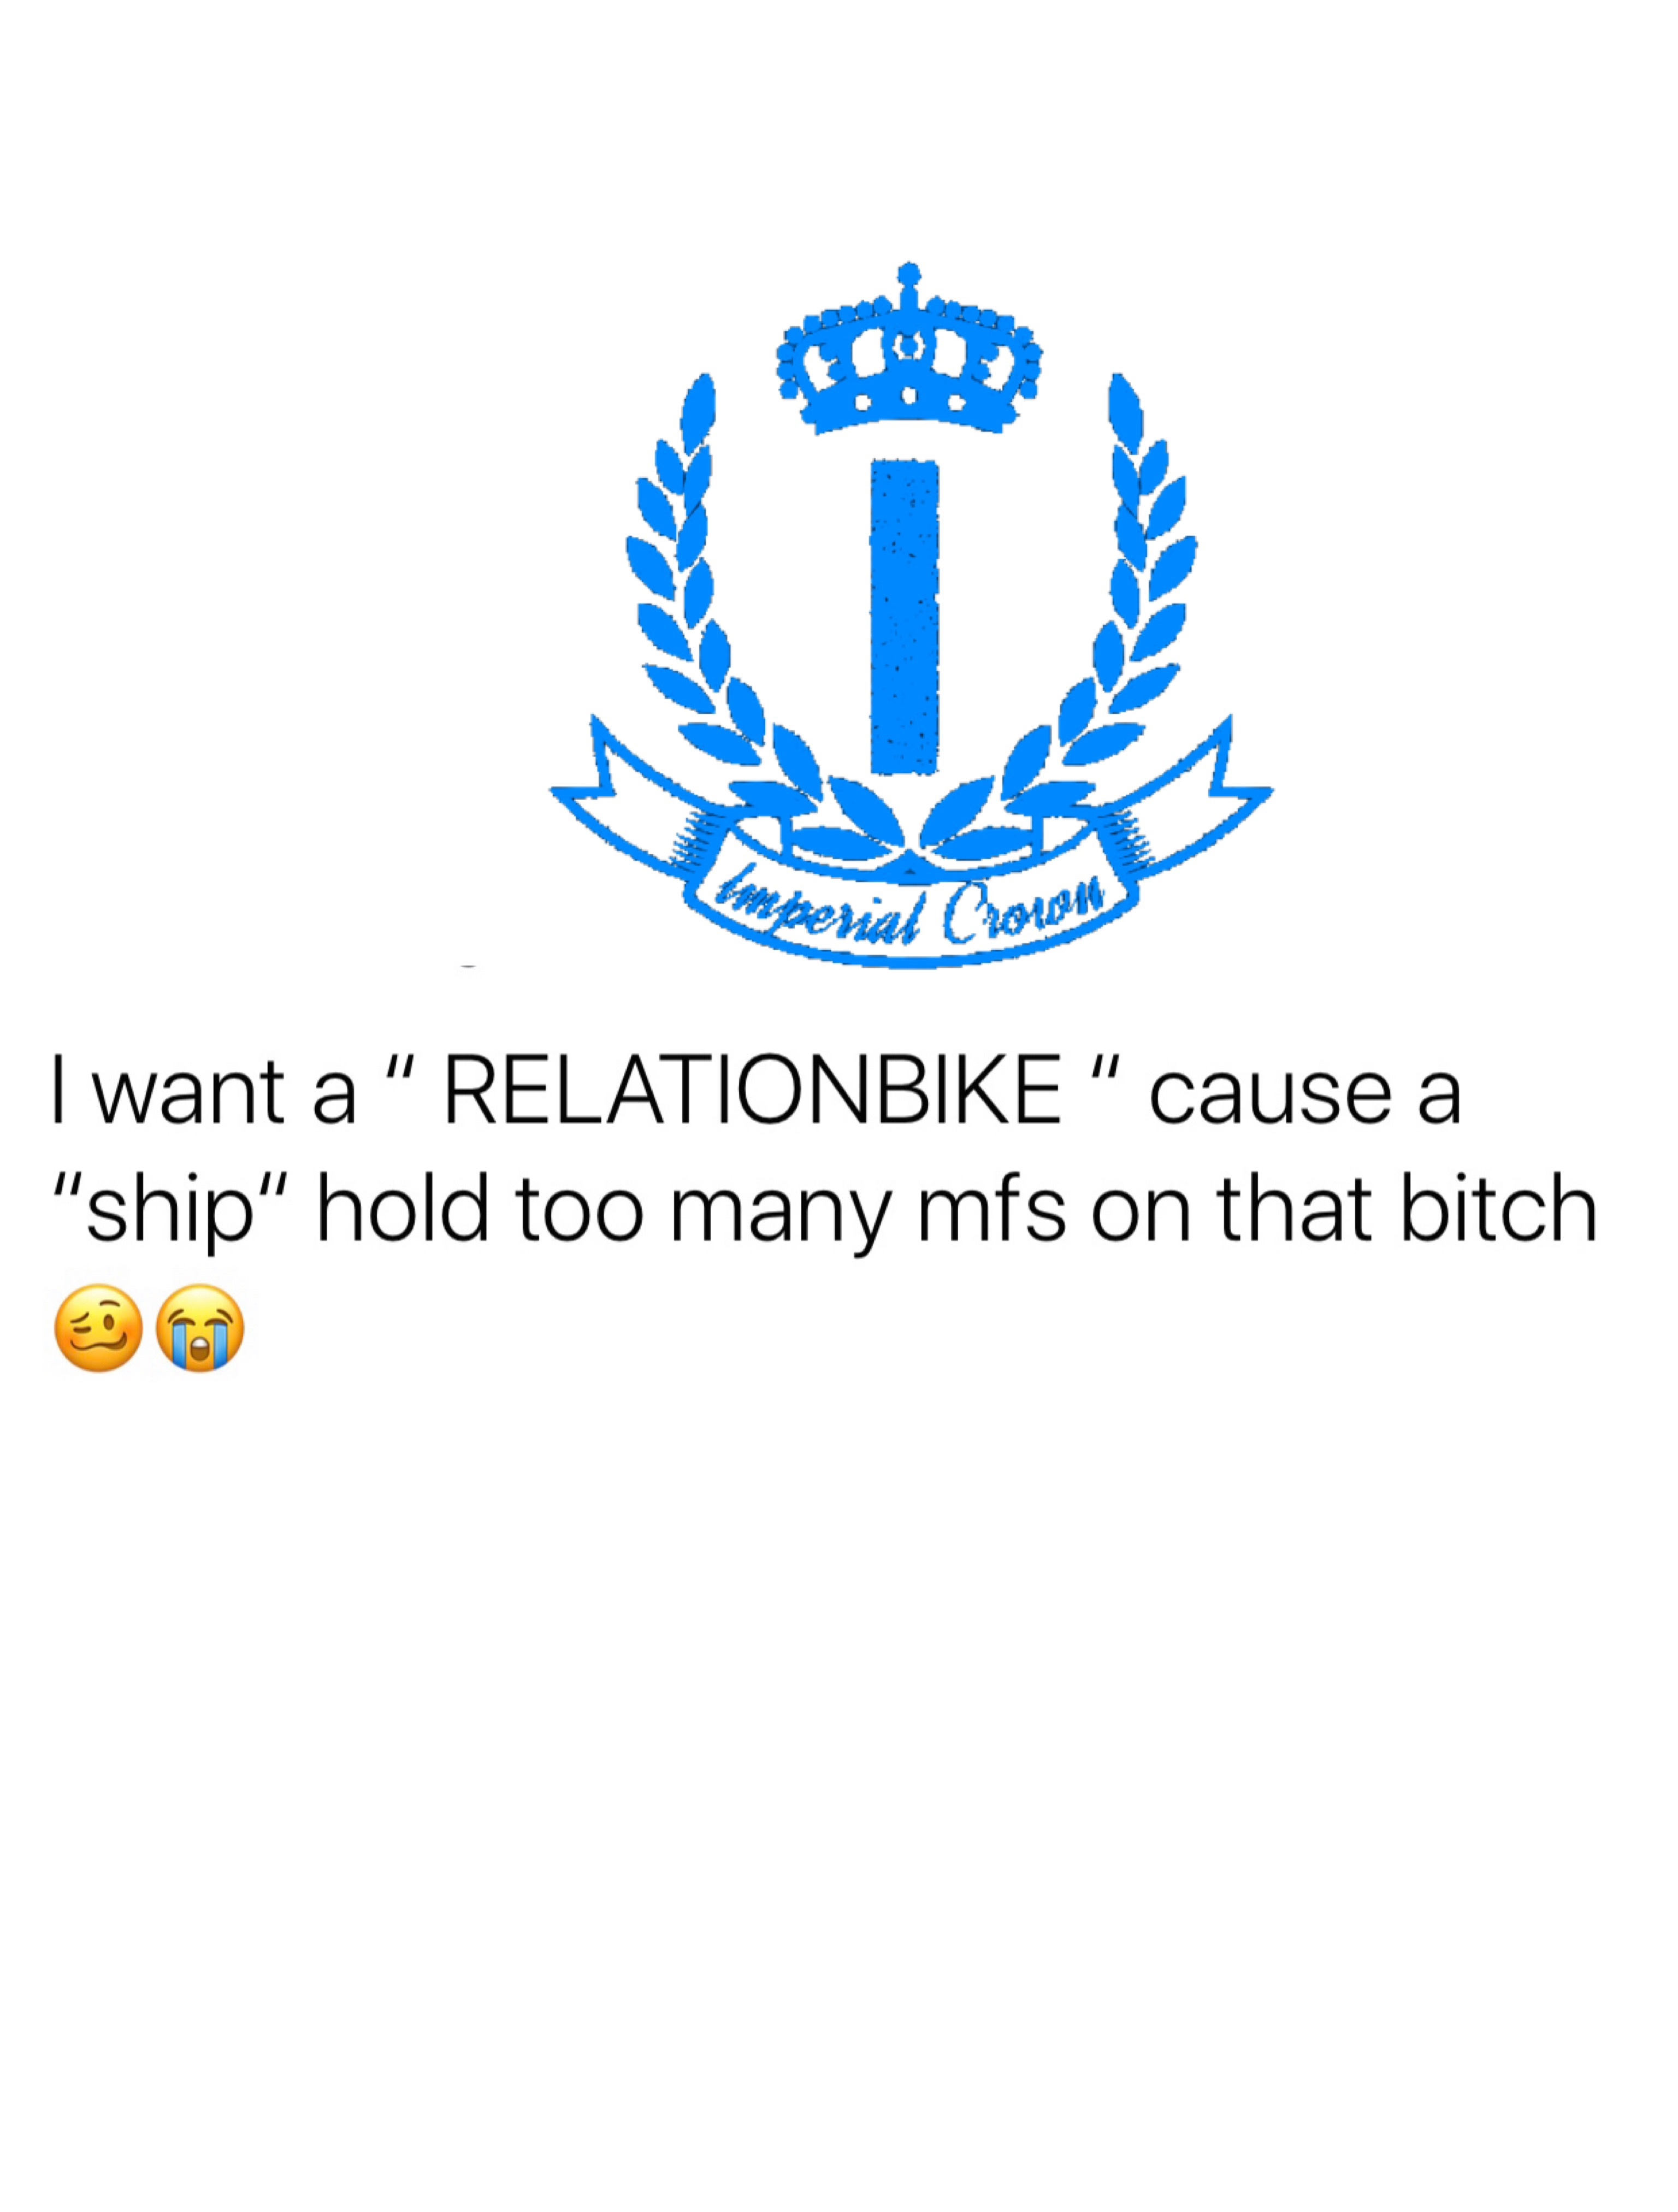 I want a relationbike cause a ship hold too many mfs on that bitch